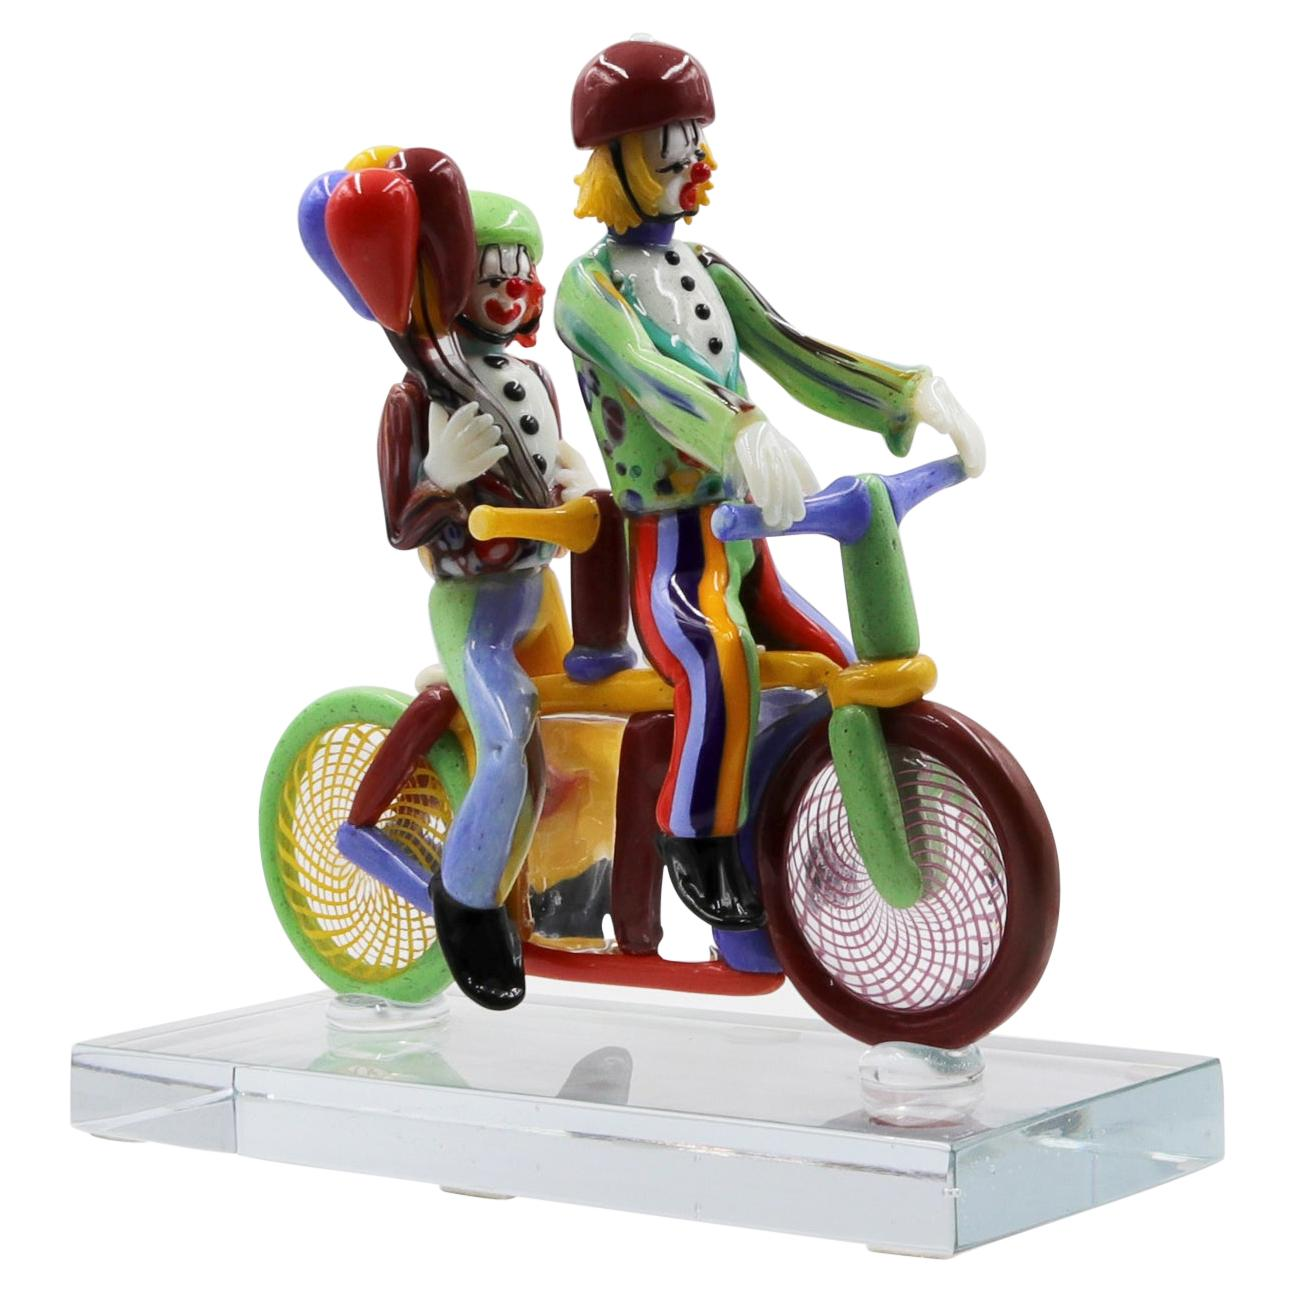 Glass Sculpture Clown Signed and Made by Pino Signoretto, Murano, Italy